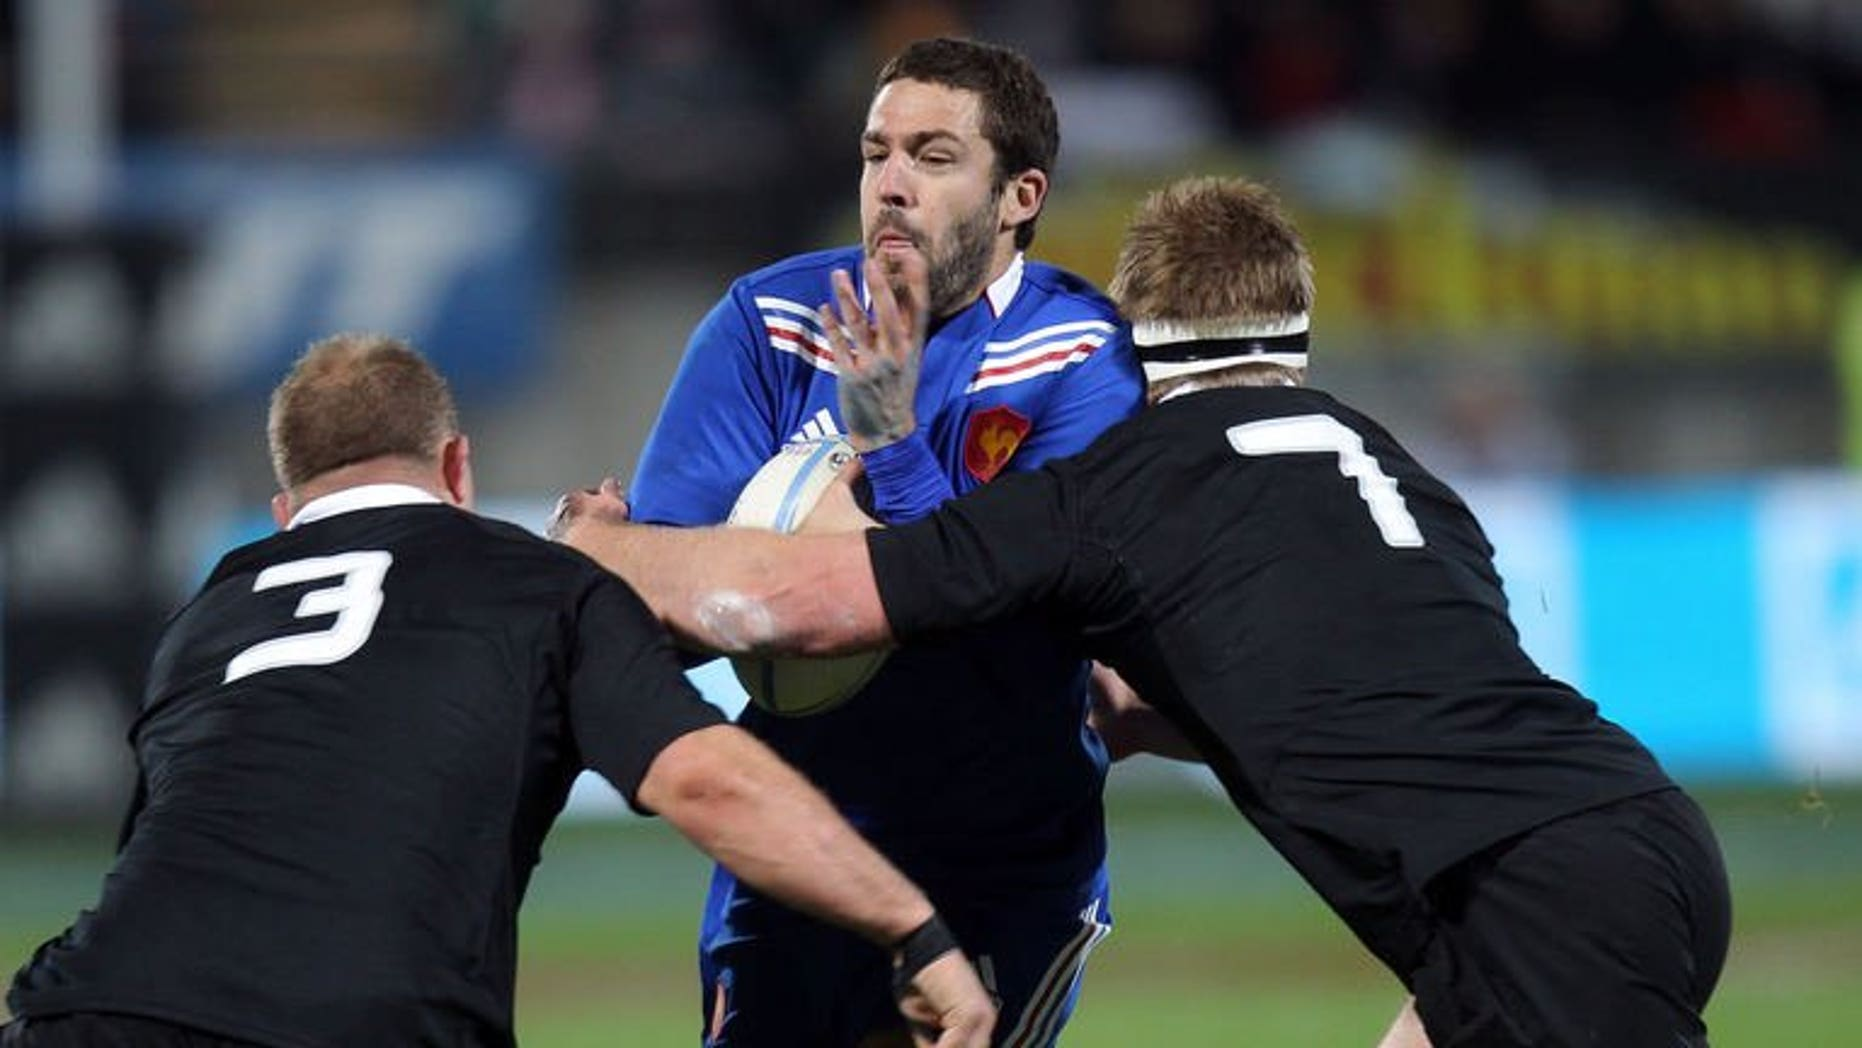 Remi Tales of France (centre) is tackled by Sam Cane (left) and Owen Franks (right) of New Zealand during the third France vs New Zealand rugby union Test match, in New Plymouth on June 21, 2013. The All Blacks beat France 24-9.